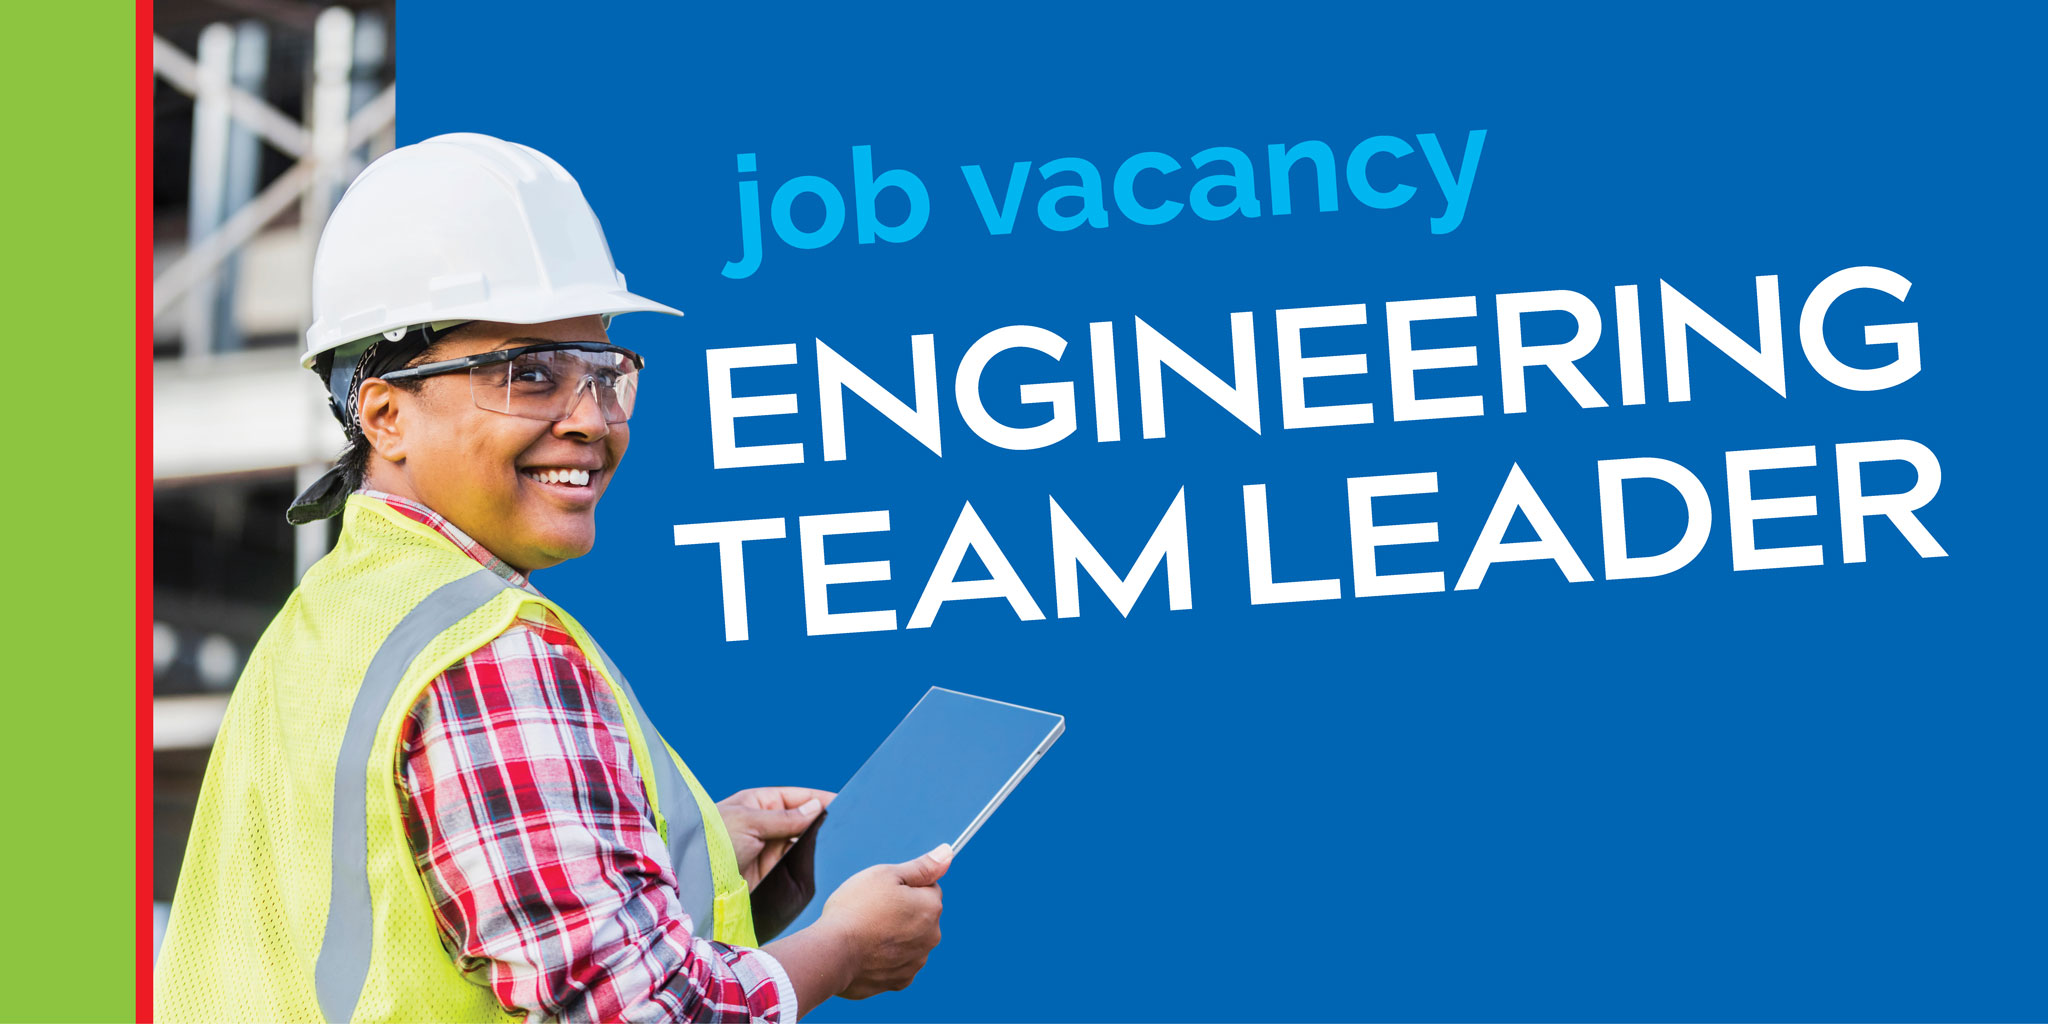 Swindon Bus engineering team leader vacancy